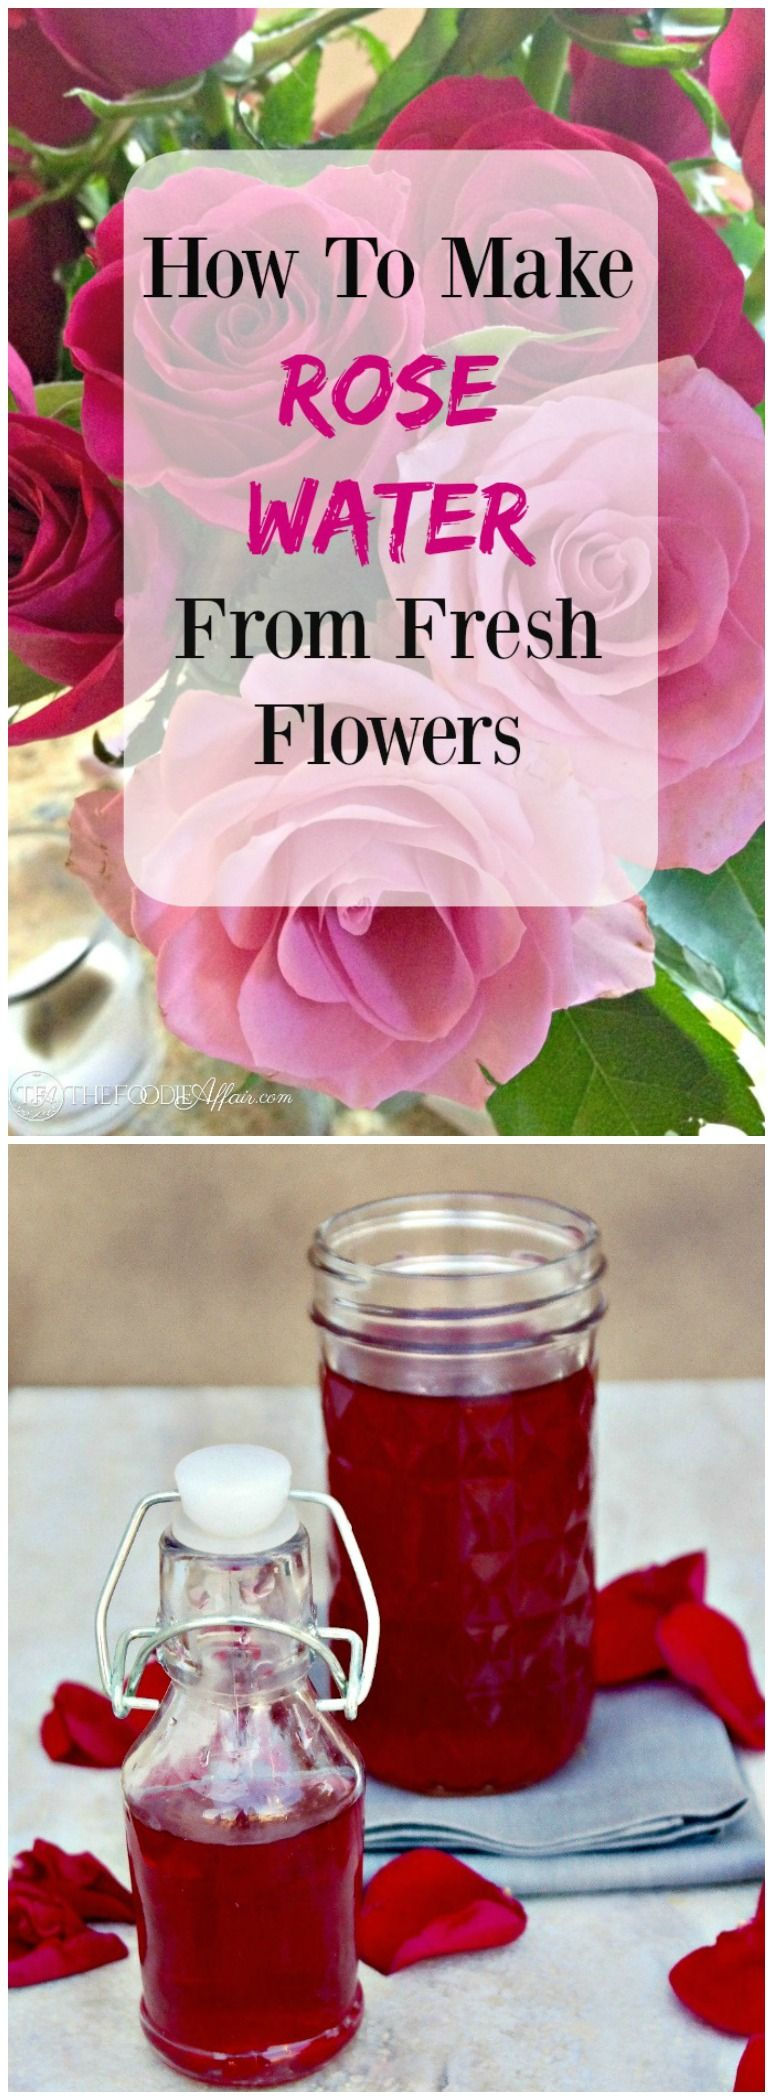 How To Make Rose Water Using Fresh Flowers The Foodie Affair Recipe Rose Water Rose Water Diy How To Make Rose